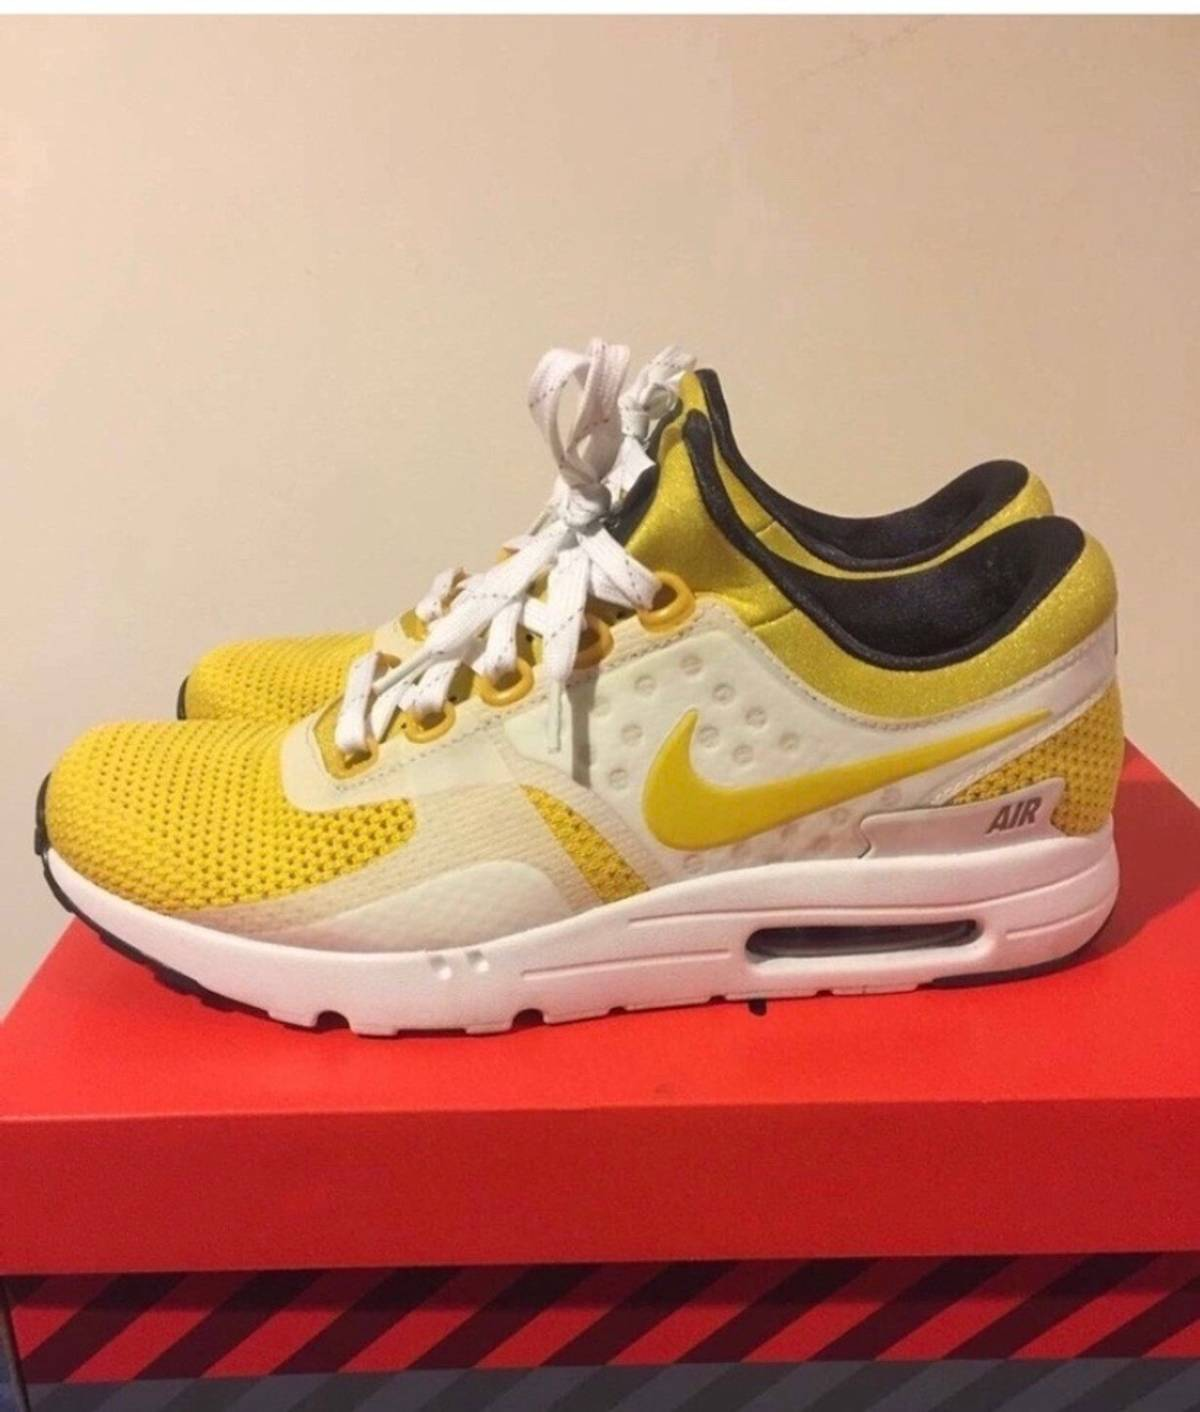 info for f1150 3bed0 Nike Nike Air Max Zero QS Tinker Sketch White Vivid Sulfur Size 9 - Low-Top  Sneakers for Sale - Grailed